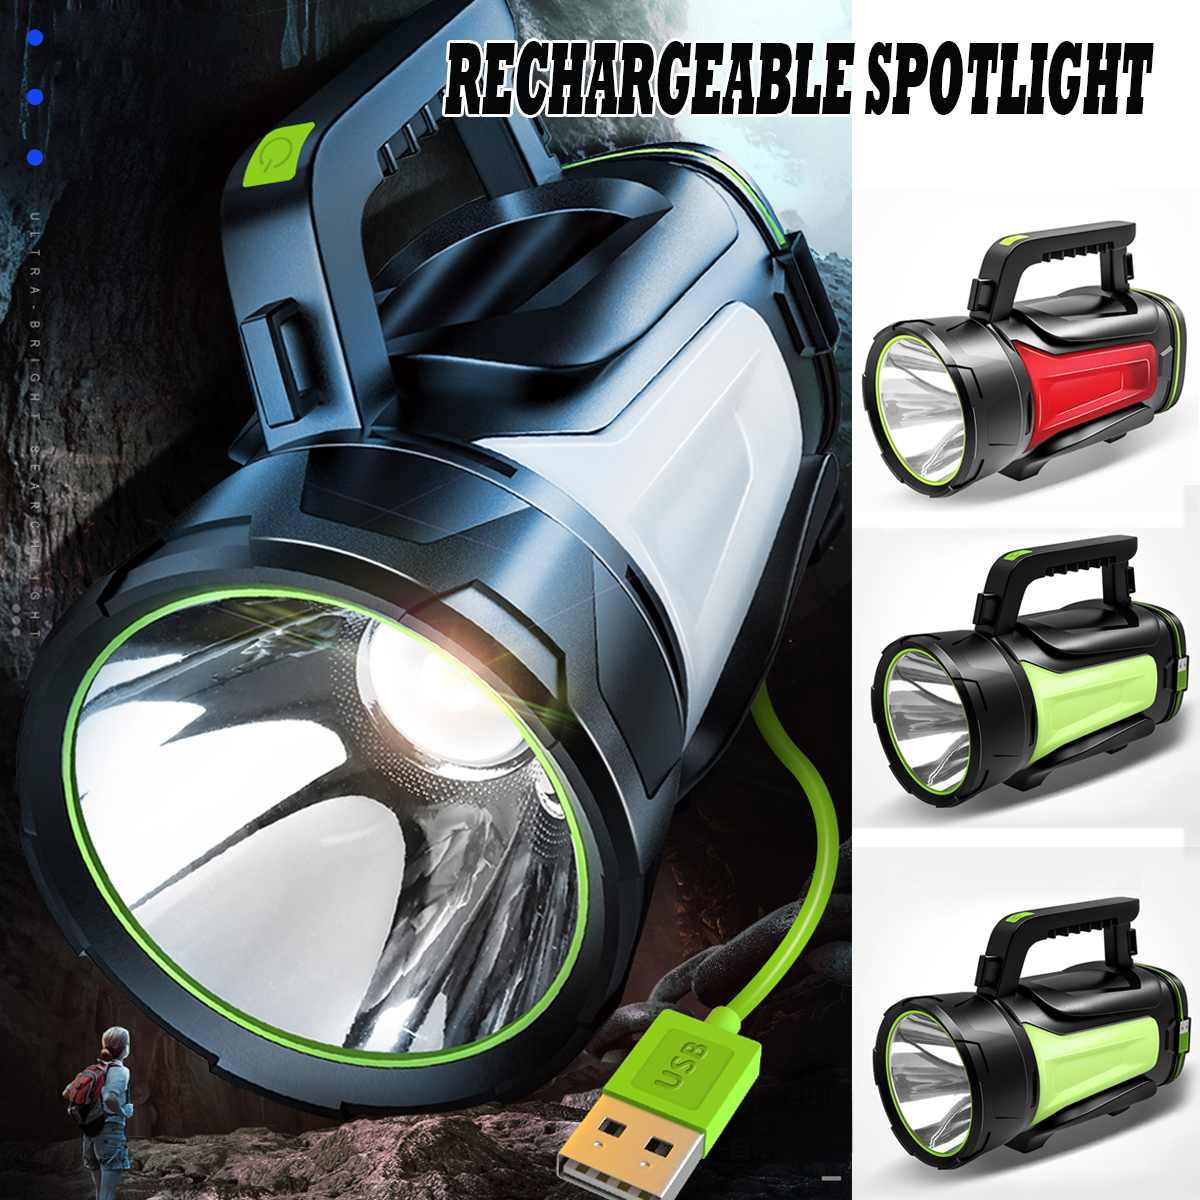 200-800W Bright Powerful LED Searchlight Handheld Flashlight Power Bank Rechargeable Battery Waterproof Torch For Outdoor